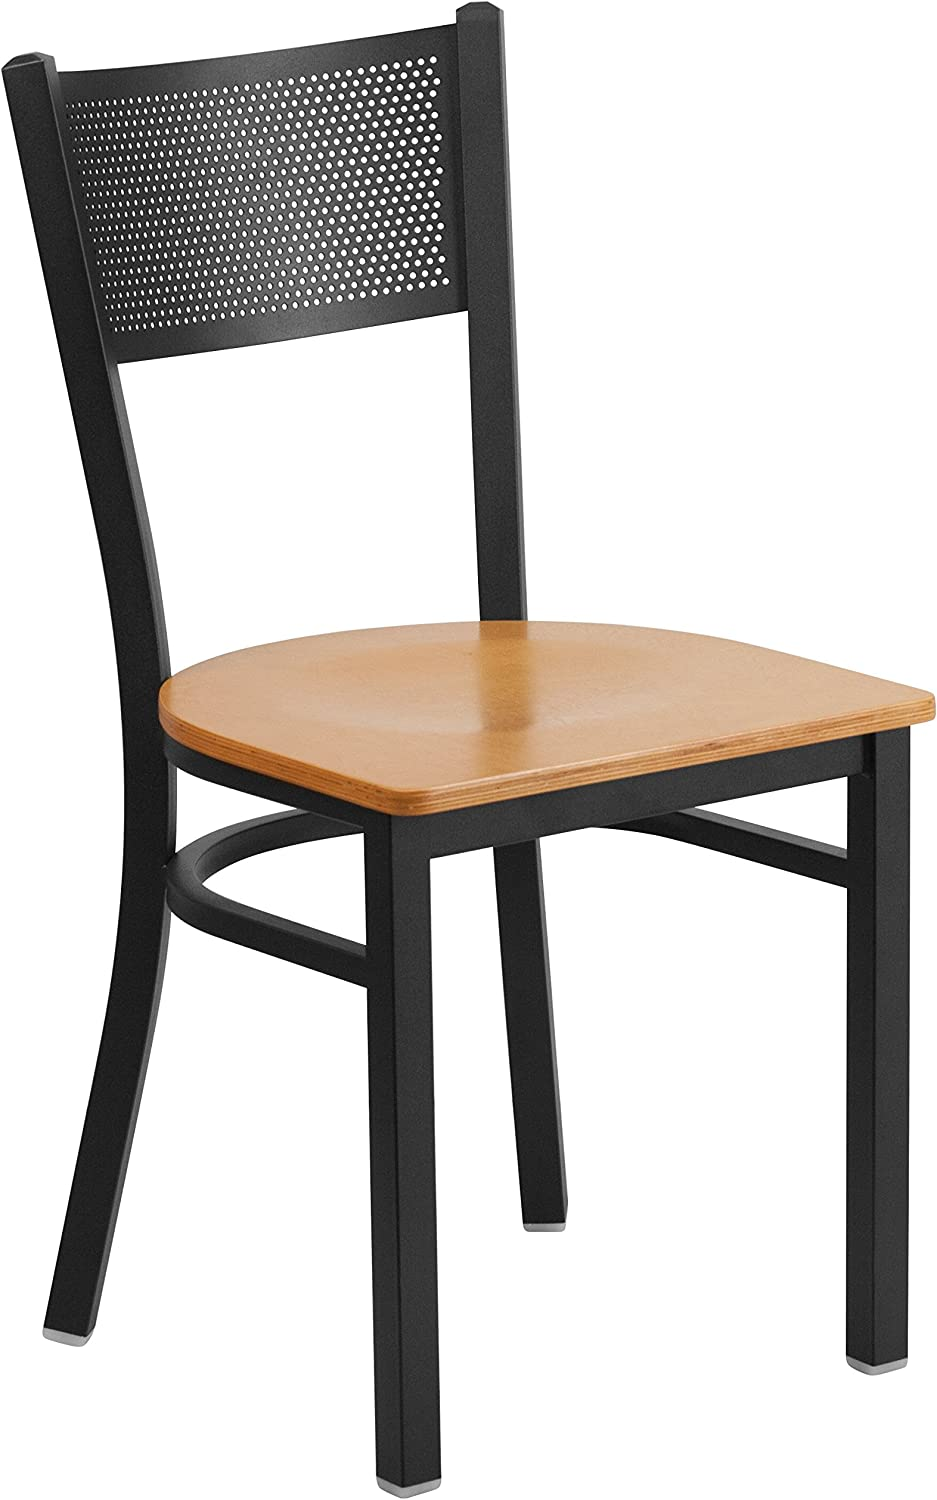 Flash Furniture HERCULES Series Black Grid Back Metal Restaurant Chair - Natural Wood Seat [XU-DG-60115-GRD-NATW-GG]